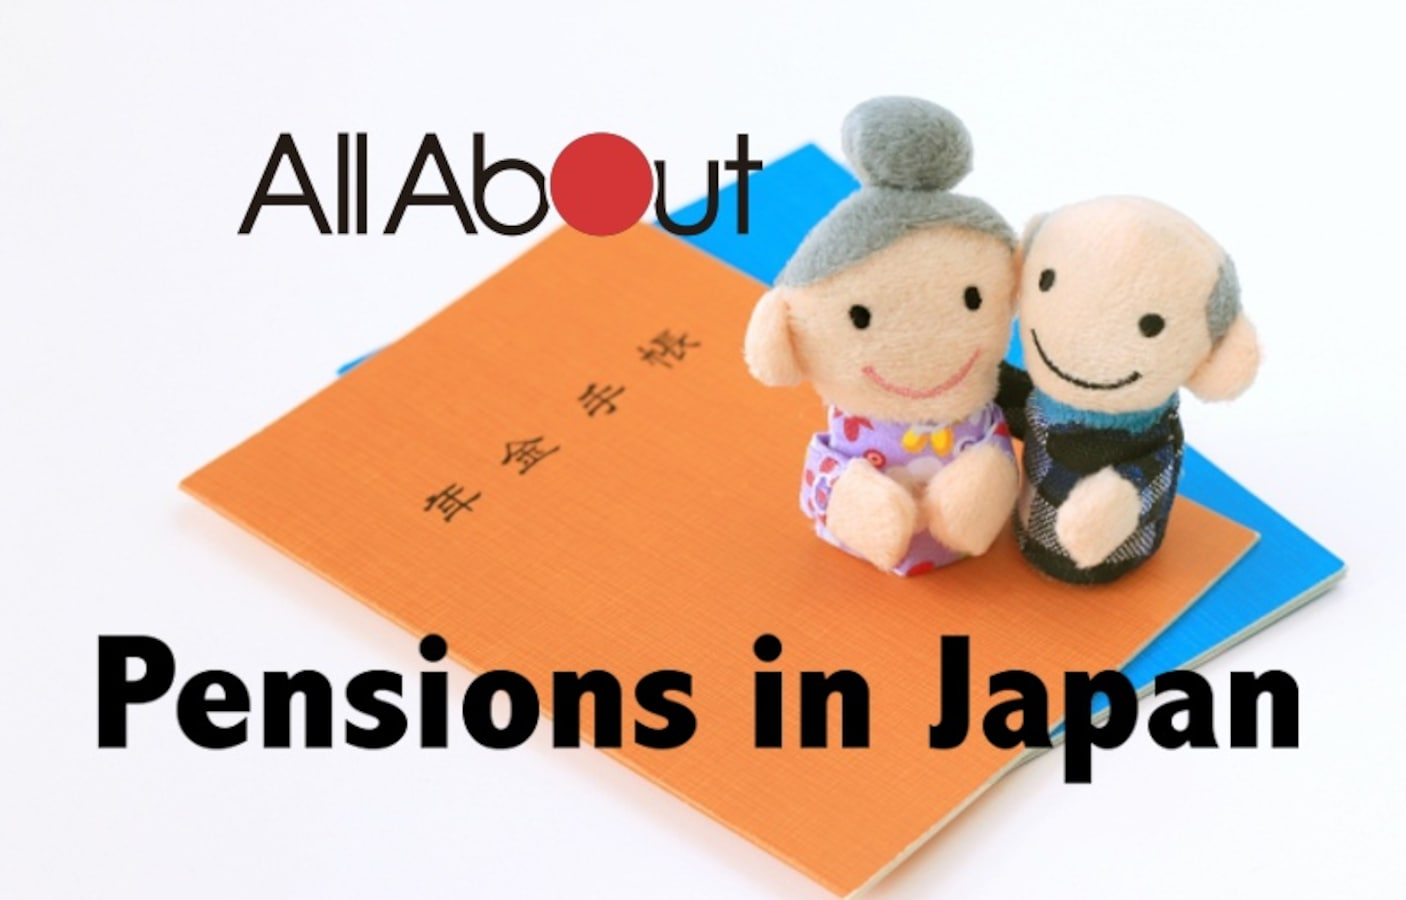 All About Pensions in Japan | All About Japan